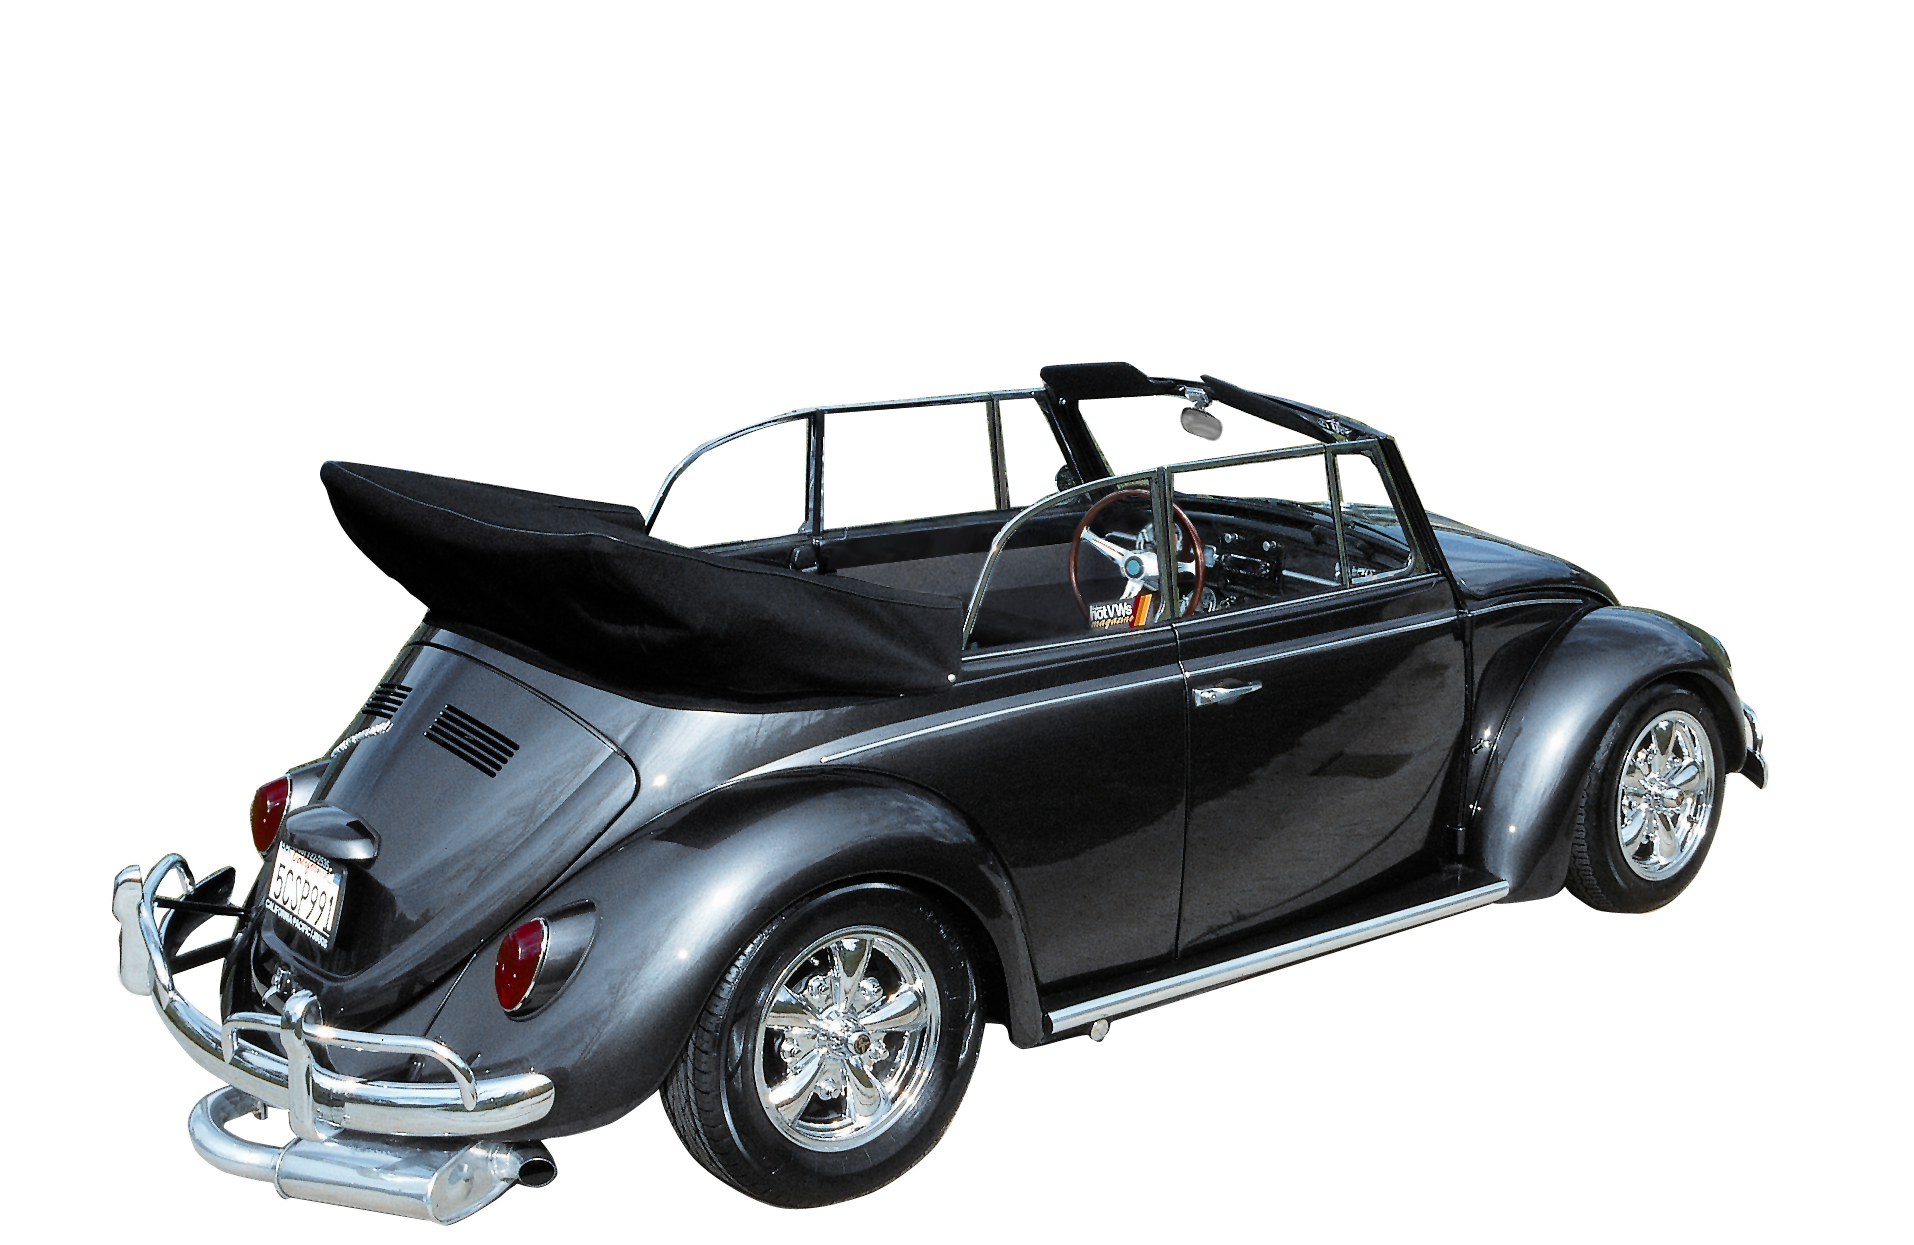 Vw bug convertible parts